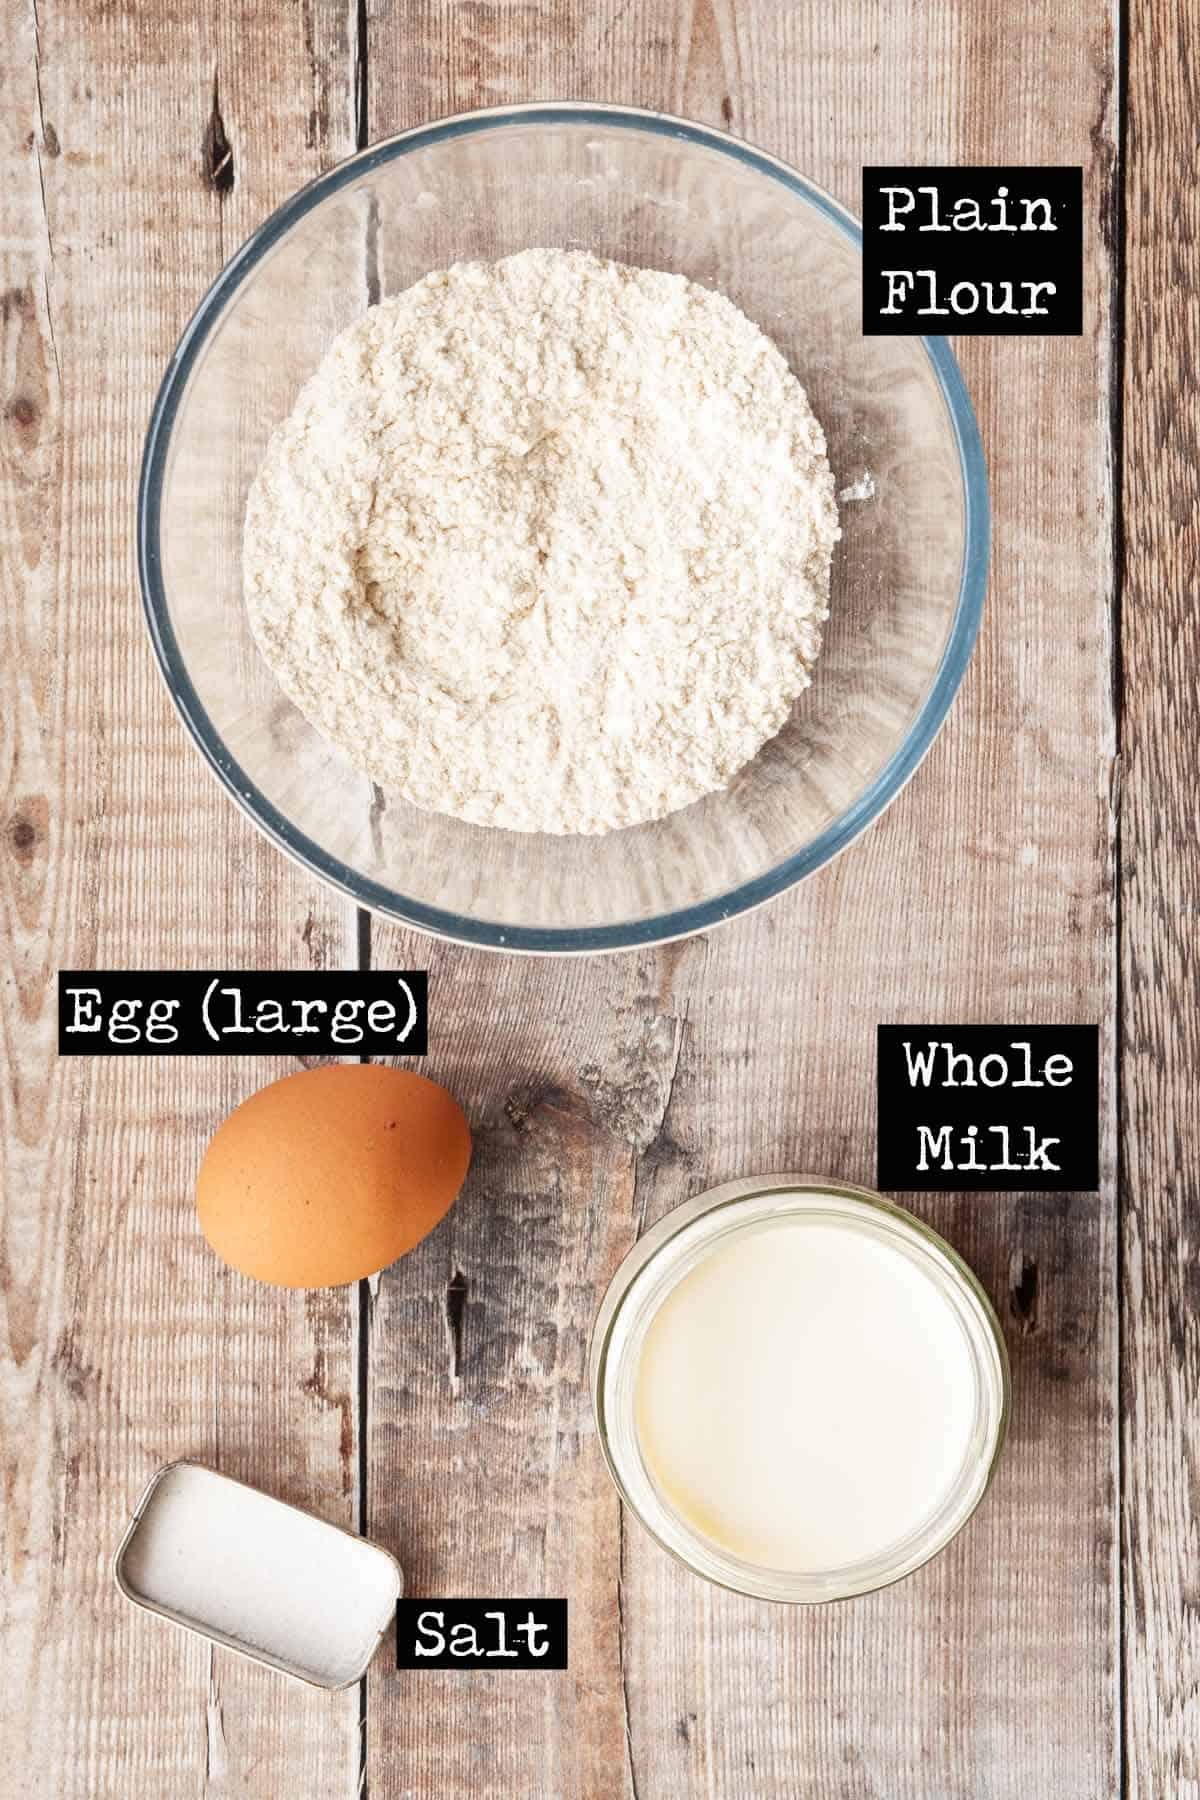 Ingredients for English pancakes with text overlay